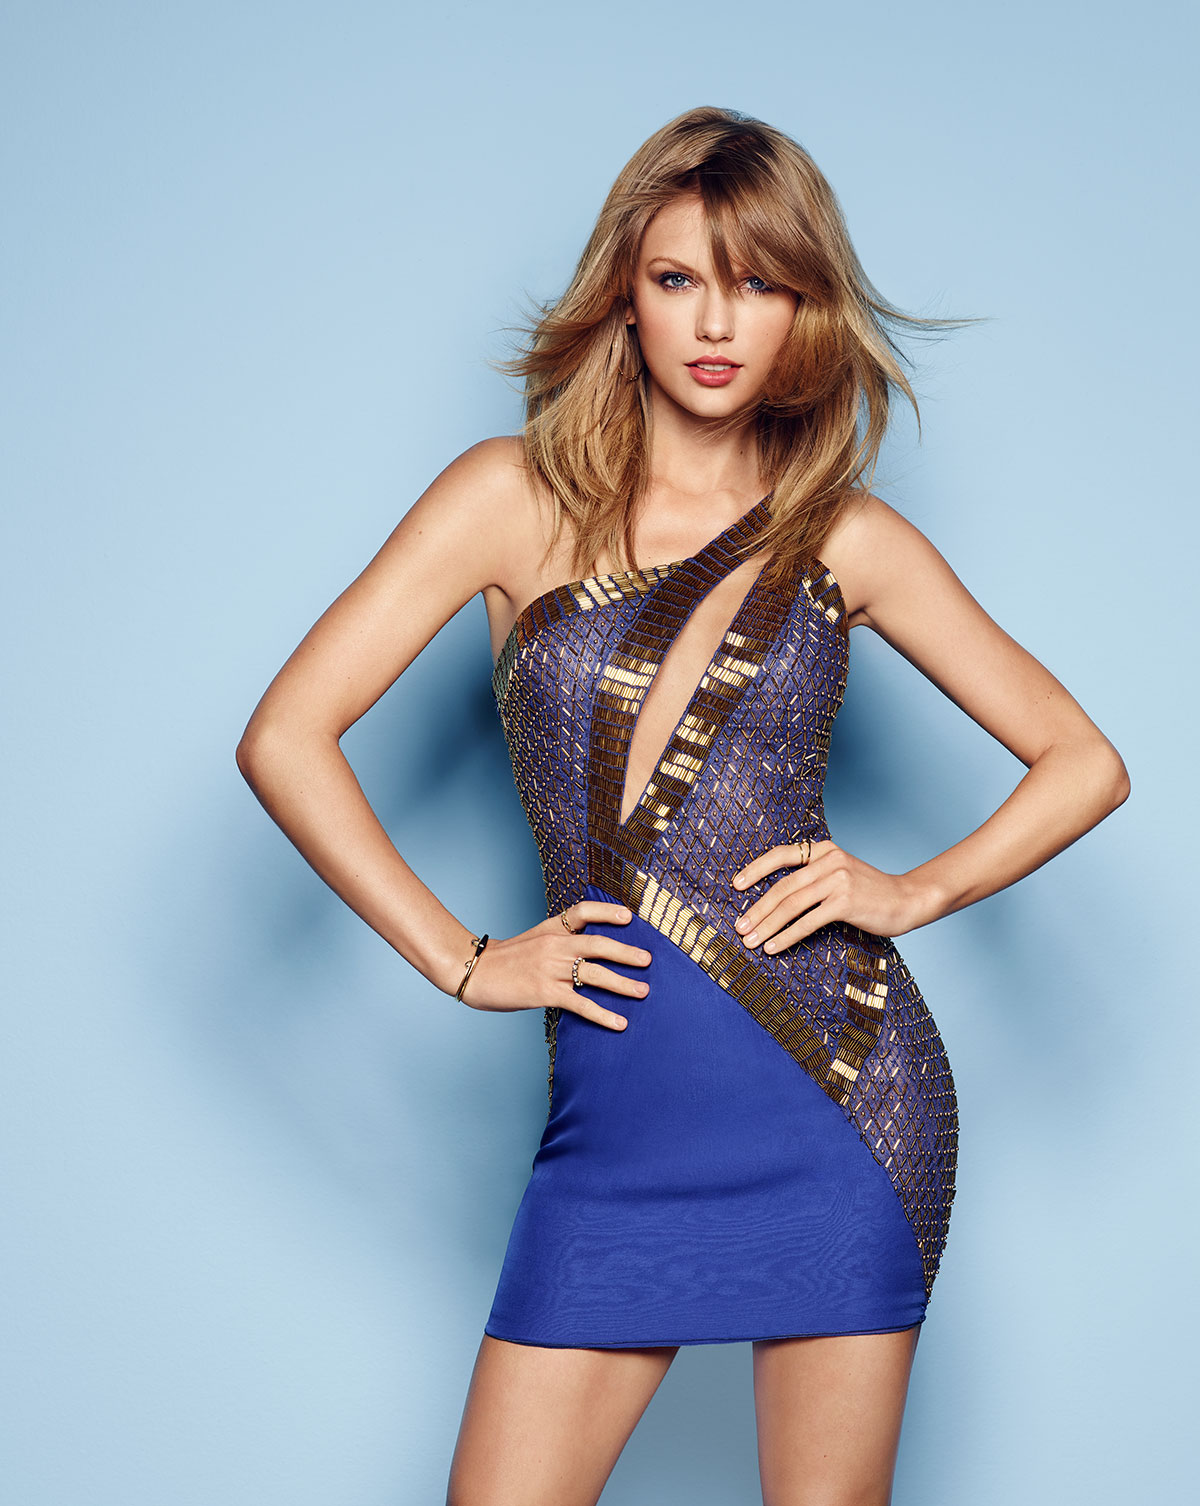 Cosmopolitan UK Photoshoot 2014